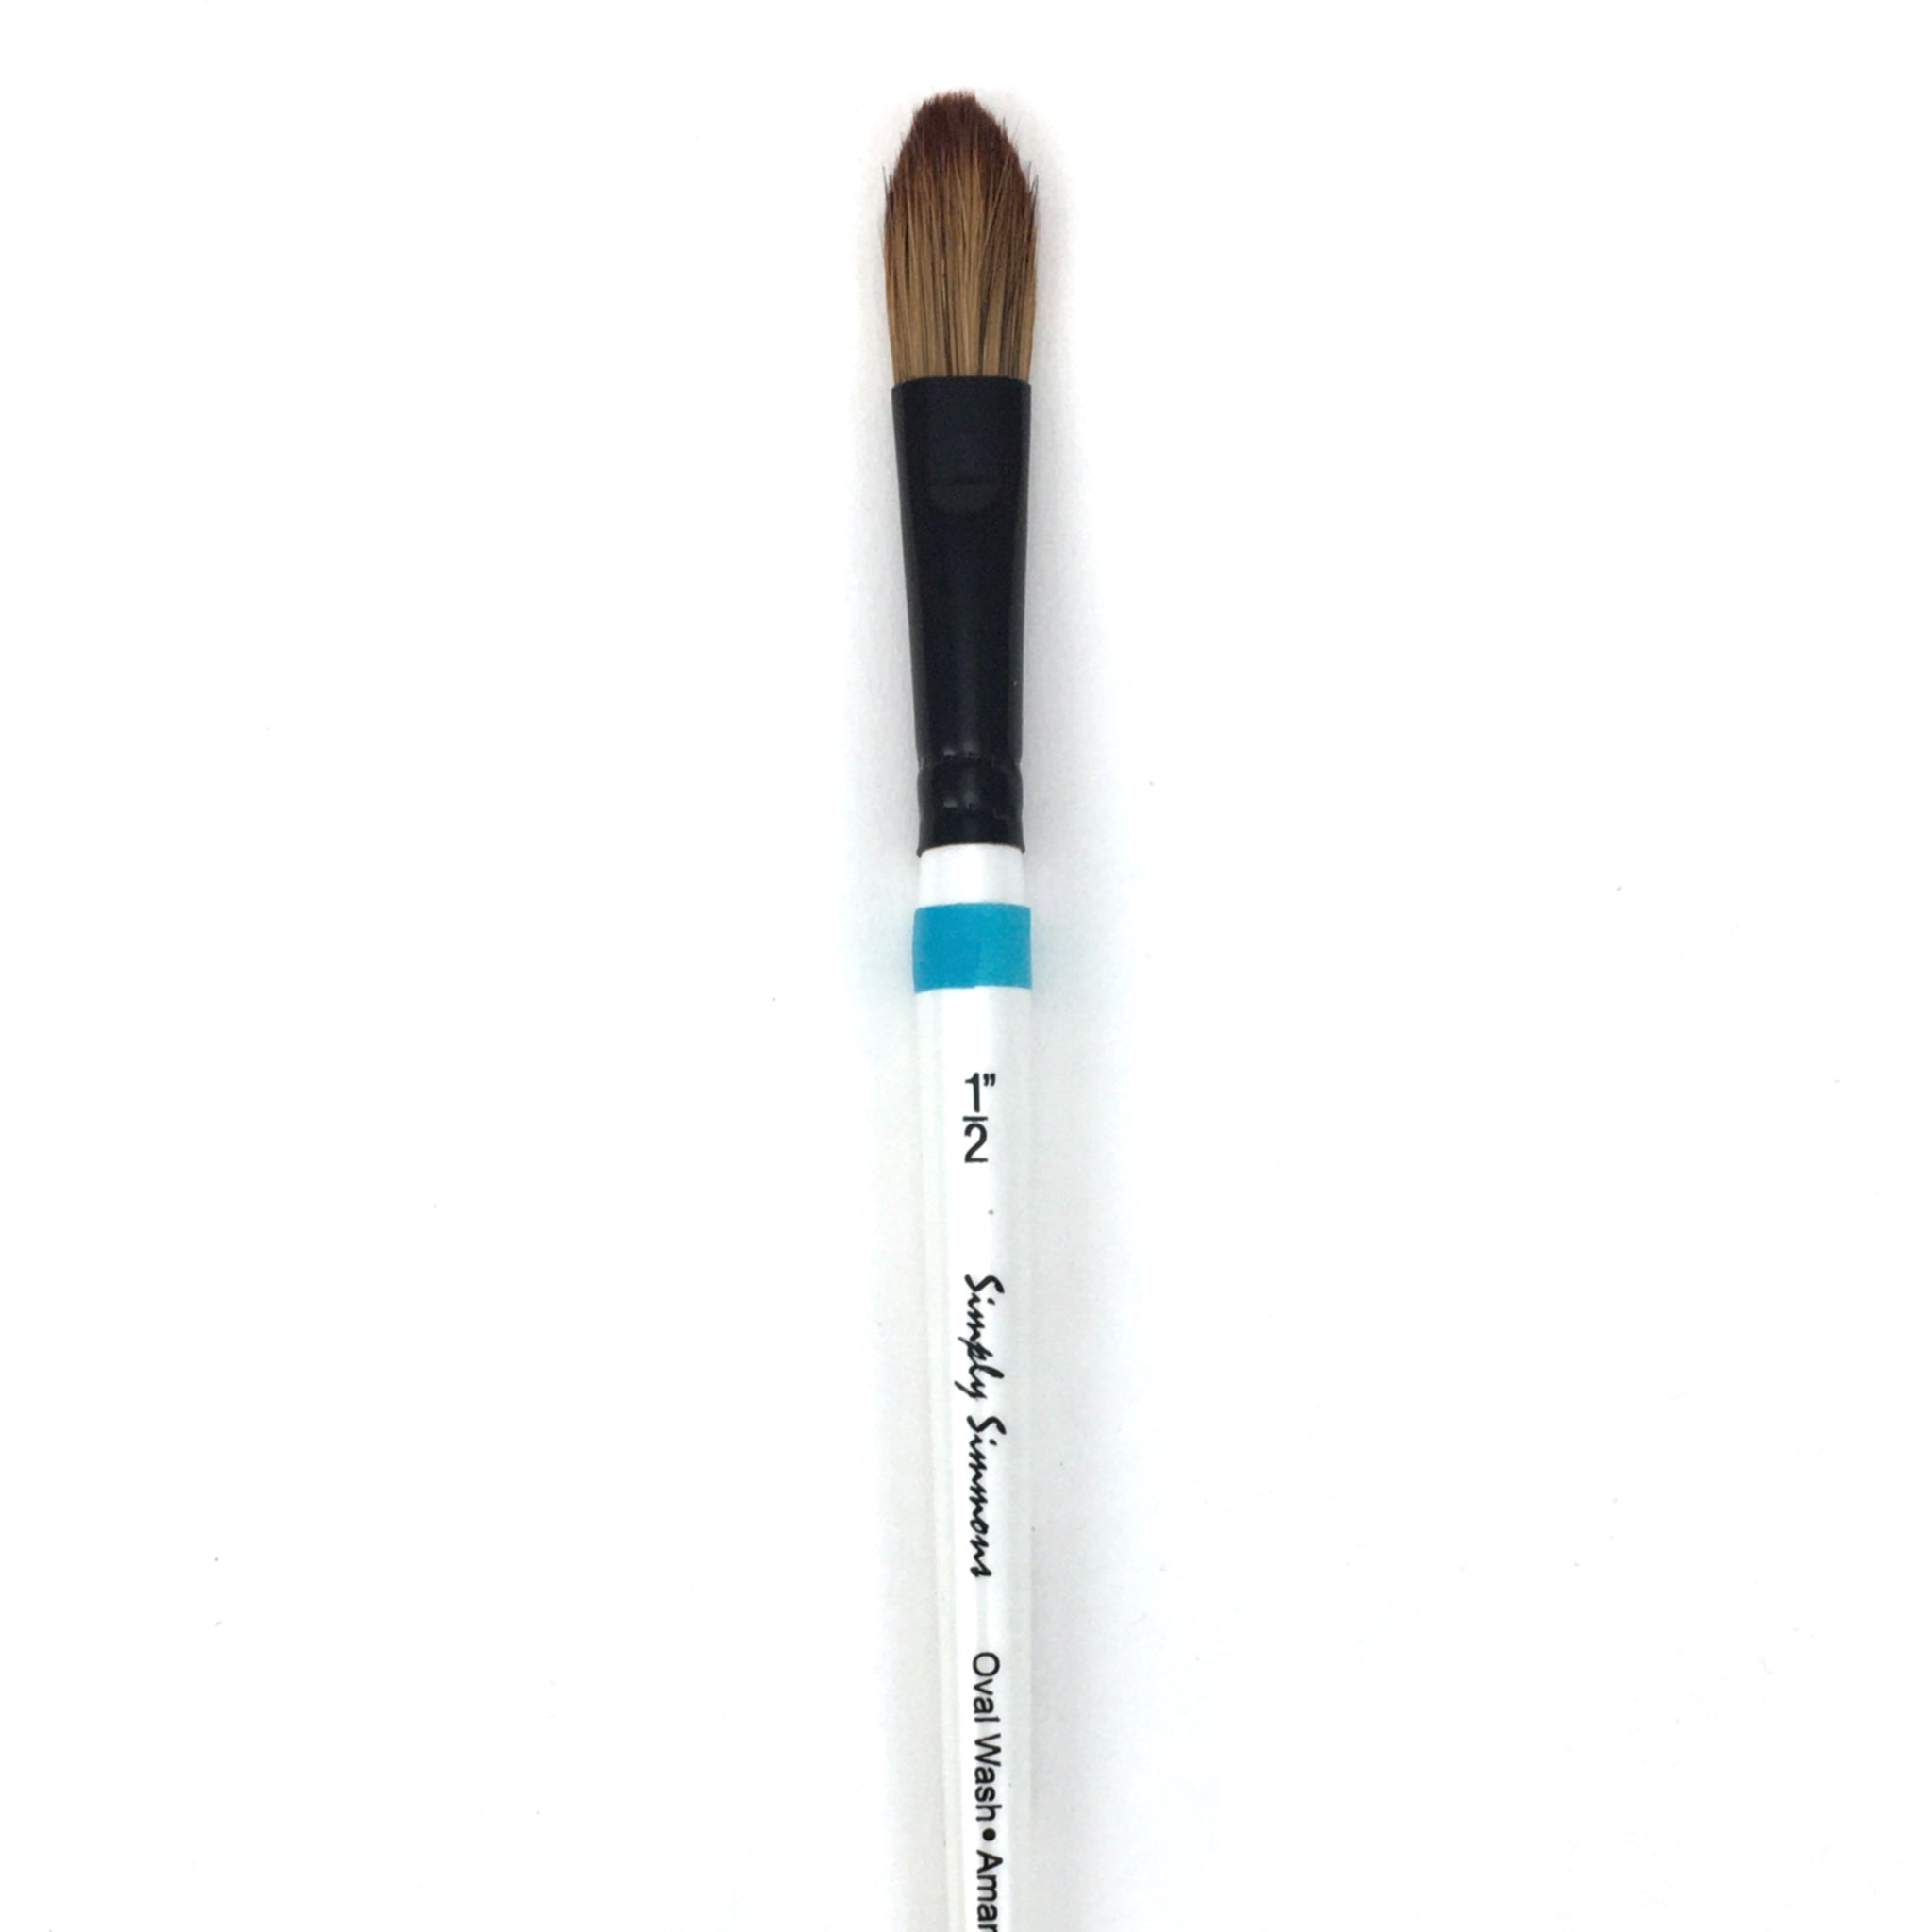 Robert Simmons Simply Simmons Watercolor Brush (Short Handle) - Oval Wash / - 1/2 inches / - natural by Robert Simmons - K. A. Artist Shop